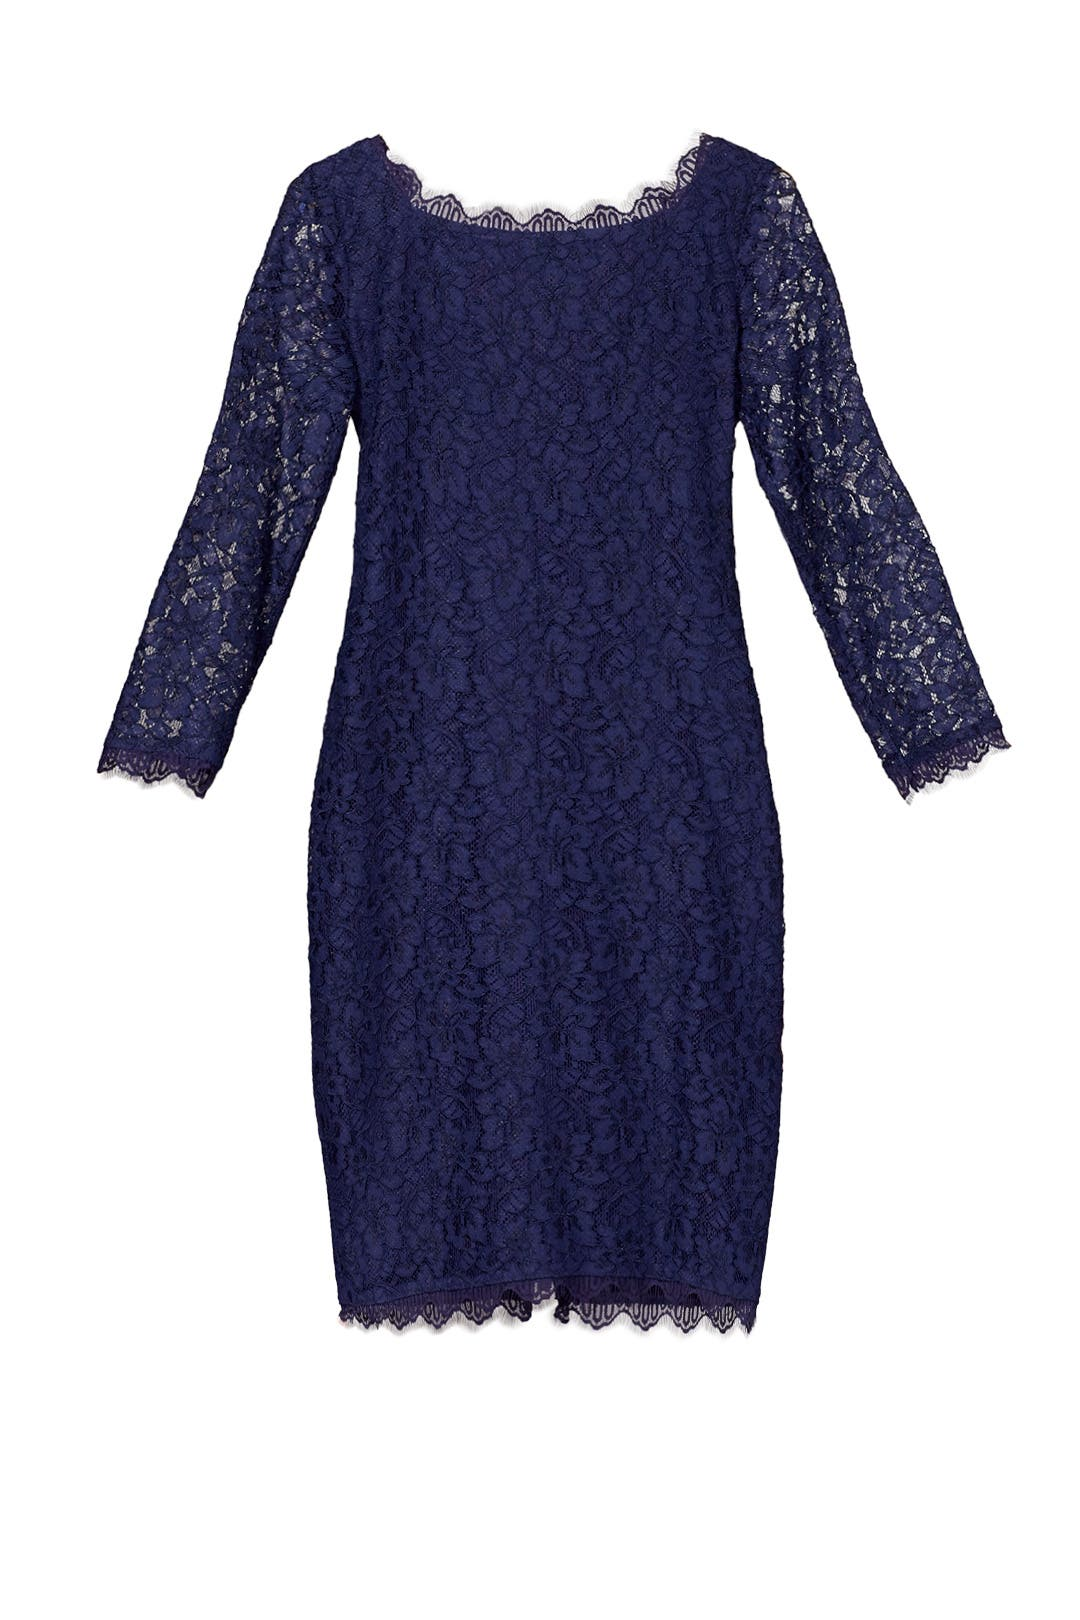 Cheap Sale The Cheapest Diane Von Furstenberg Woman Scalloped Corded Lace Dress Midnight Blue Size 14 Diane Von Fürstenberg New And Fashion Free Shipping For Sale Buy Cheap Best Cheap Sale Countdown Package CN3tnsRA